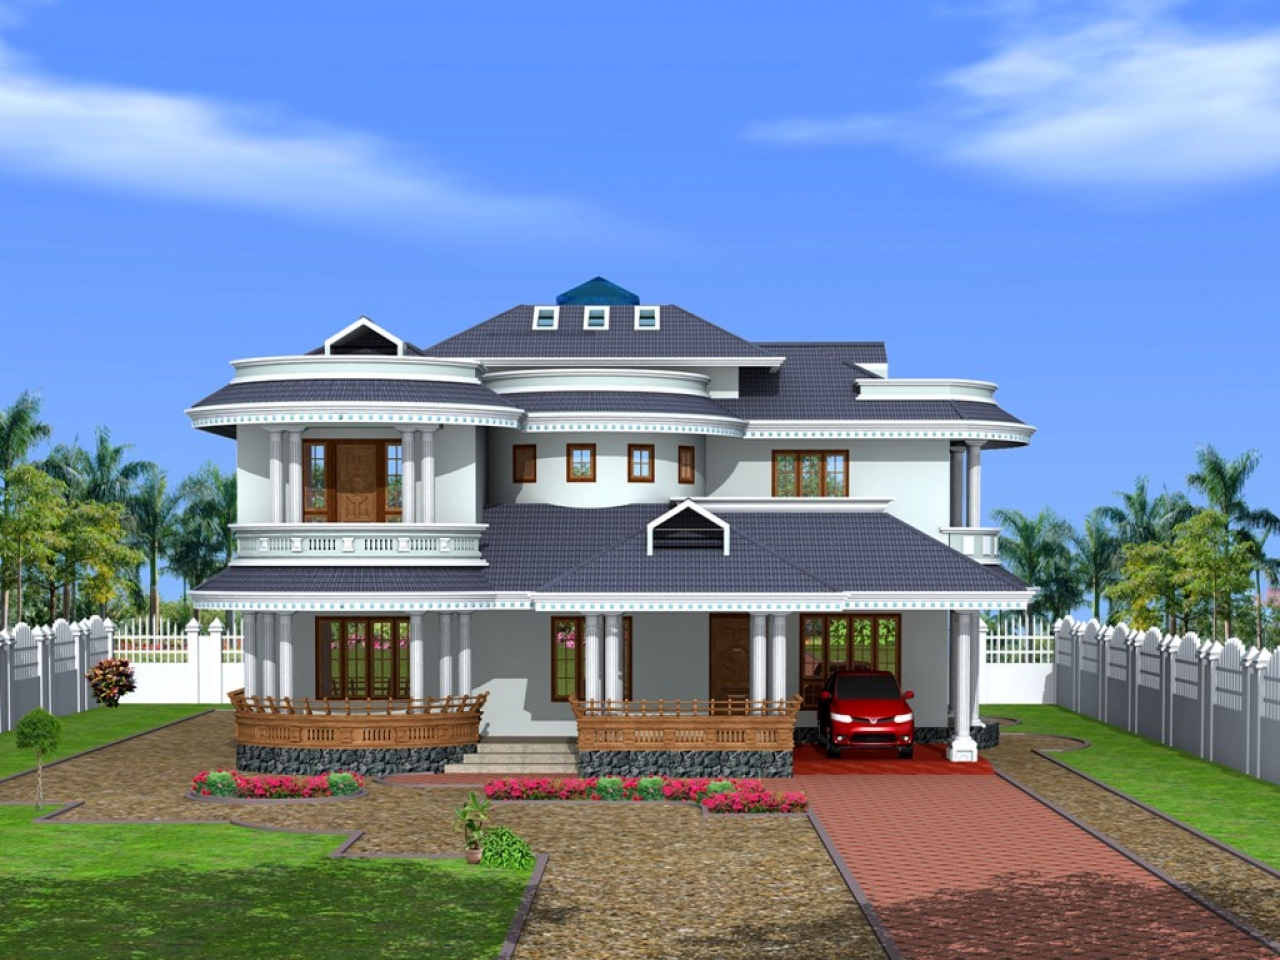 Kerala house interior design kerala house exterior designs bungalow model houses - Kerala exterior model homes ...